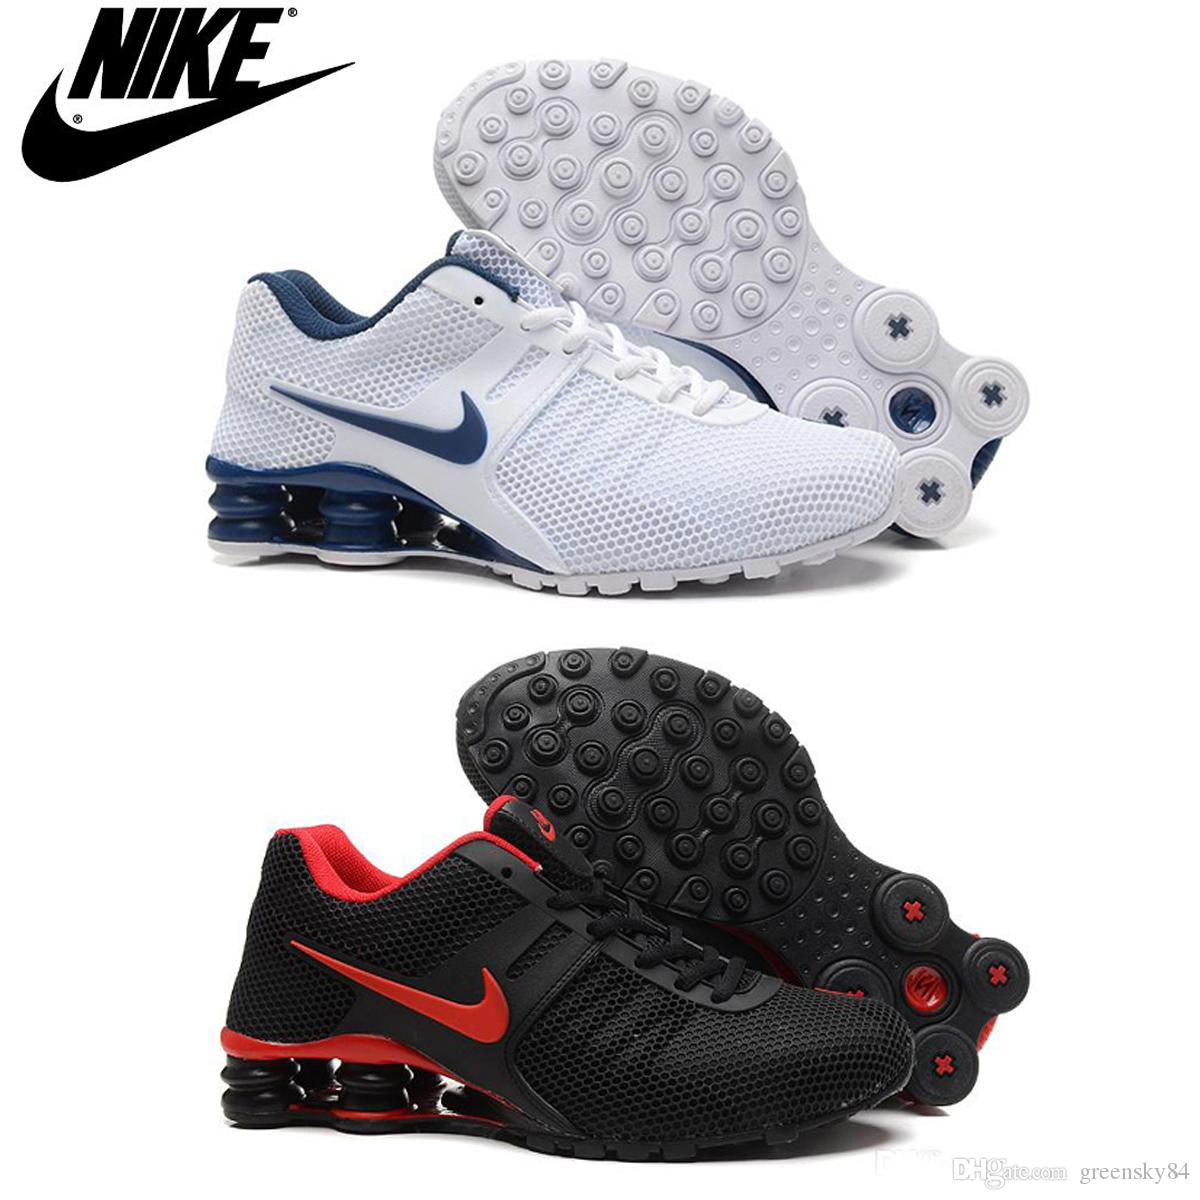 vanidad grado consultor  Nike Shox 807 Turbo KPU Running Shoes,Wholesale Original Cheap Nike Air Shox  NZ,R4,R2 Mens Sport Sneakers Size 41 46,Tennis Shoes Athletic Shoes From  Greensky84, $93.27| DHgate.Com